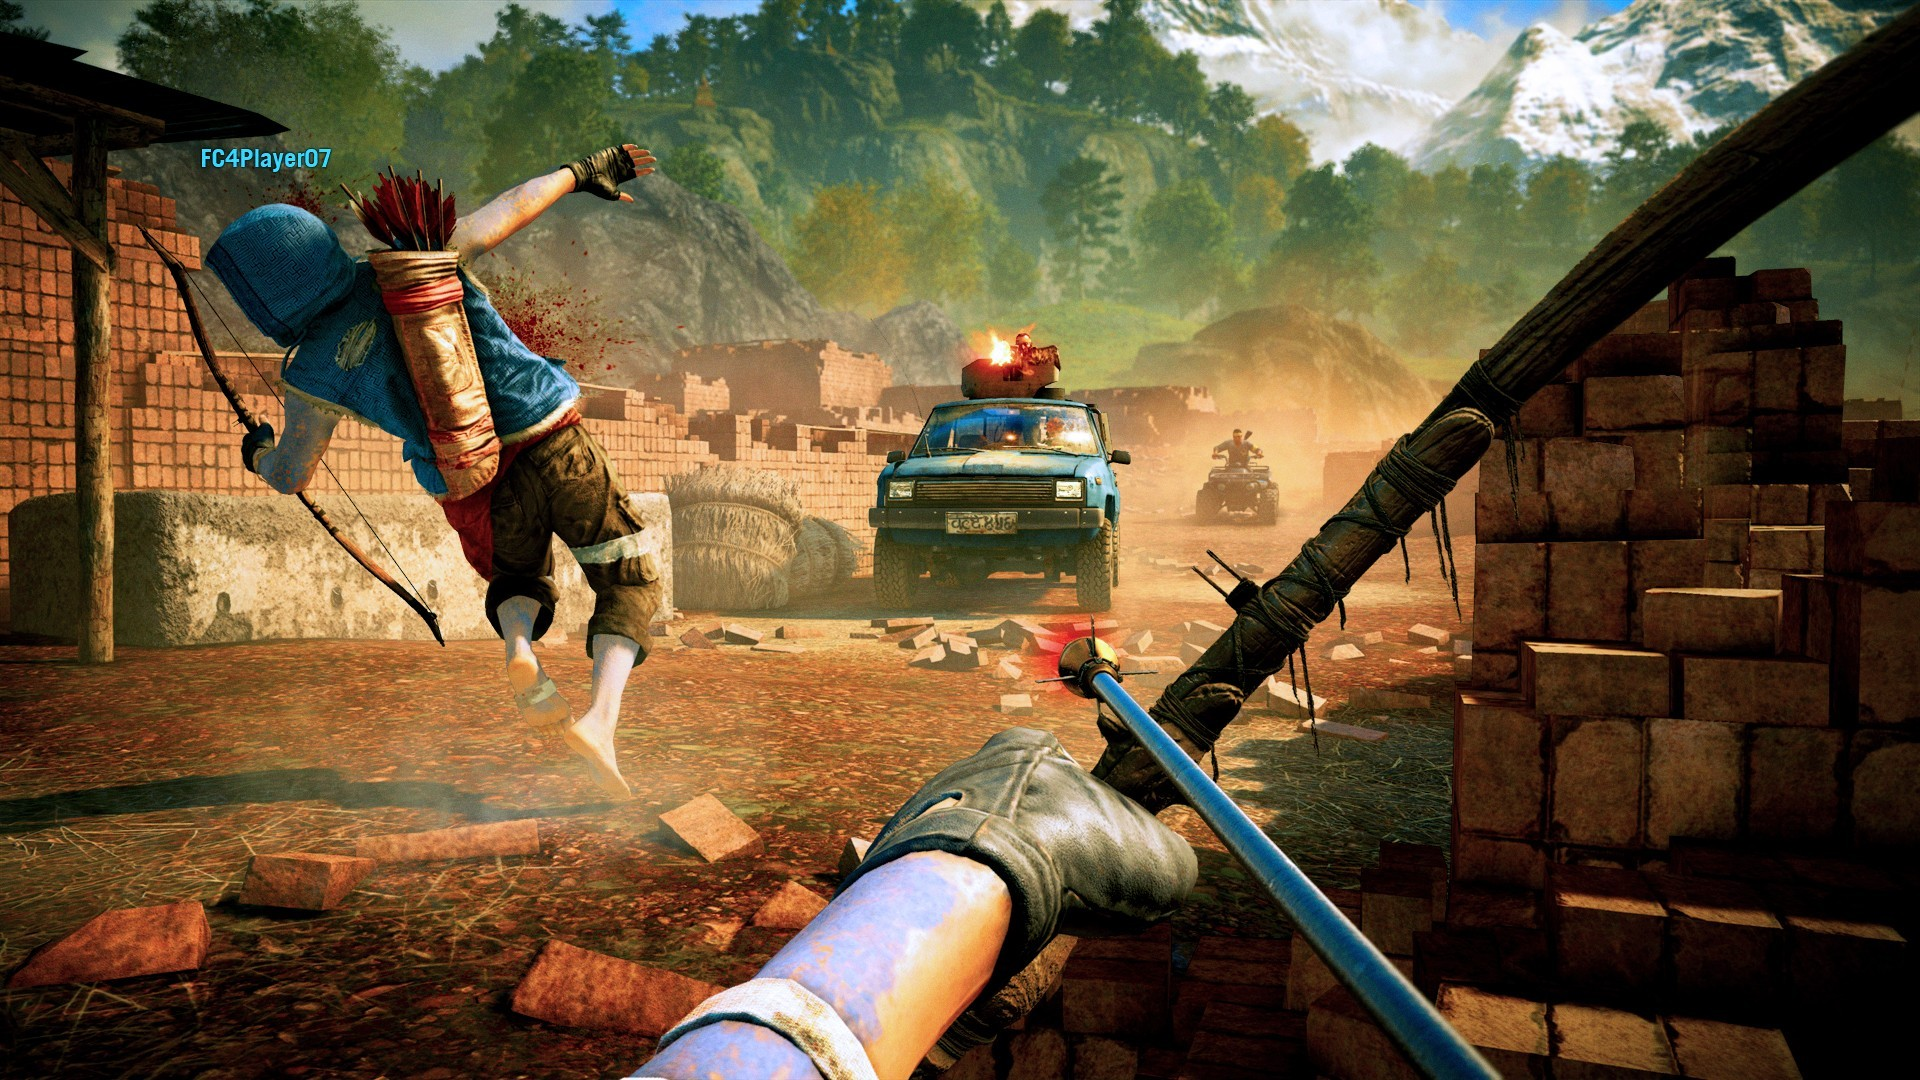 Far Cry 4 Battles Of Kyrat Competitive Pvp Mode Revealed Video Screenshots